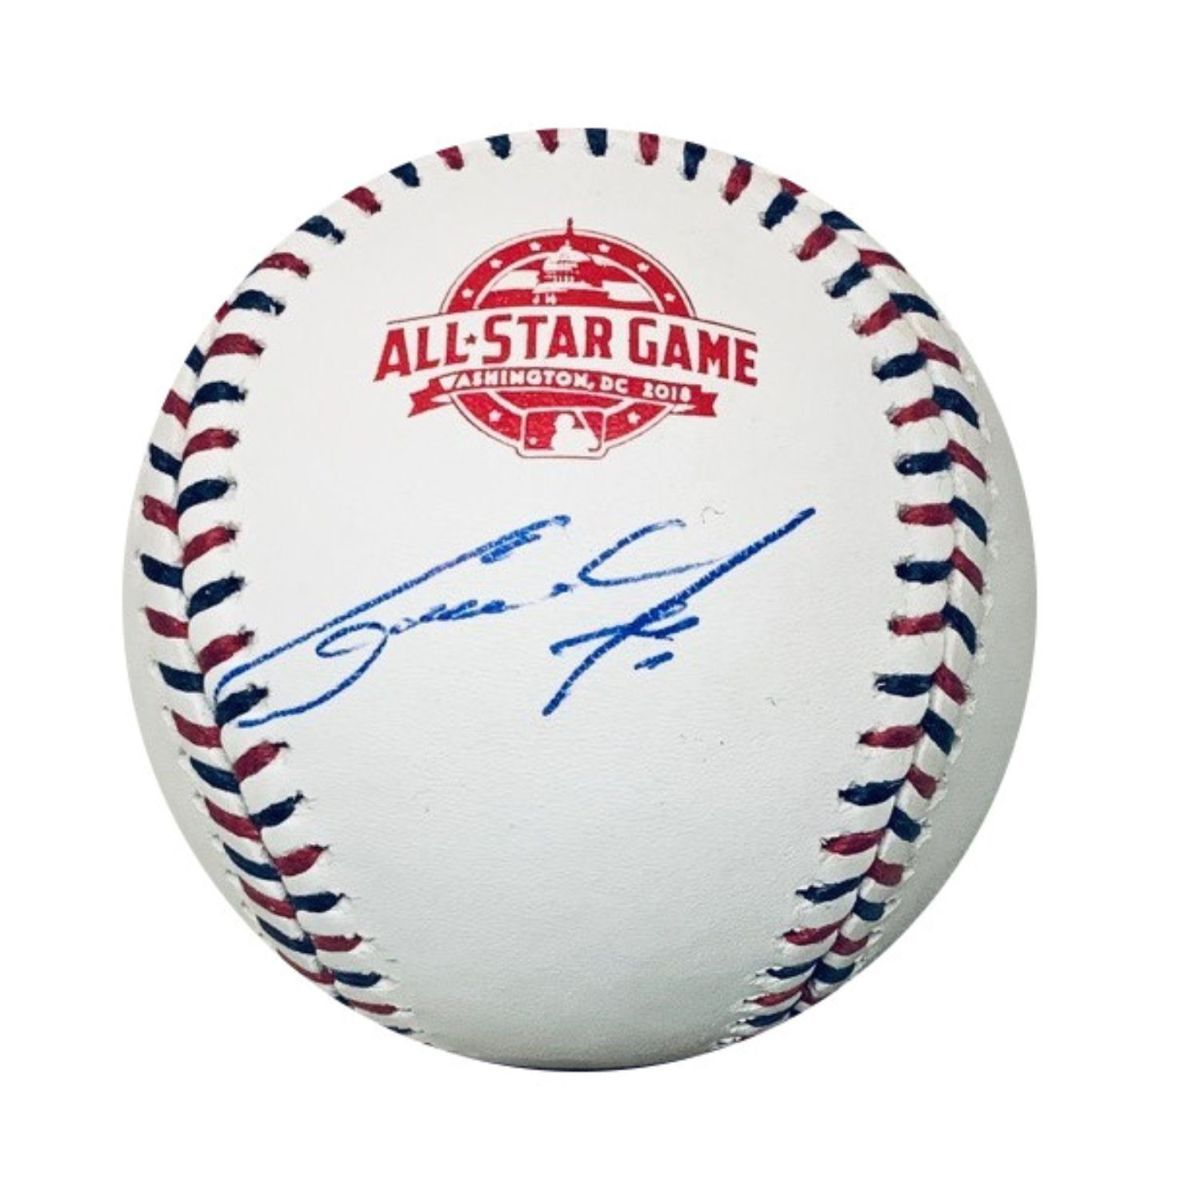 Christian Yelich Signed All Star Game Baseballs - Just one 2018 Official All Star baseball left, and only 2 of the 2019 All Star Game Baseball! - https://t.co/1NGEj4YyWk https://t.co/WbFWCpHcdT #MLB #MilwaukeeBrewers Yelich might become the first player with 50HR and 30SB. https://t.co/D9xjHGXRf2